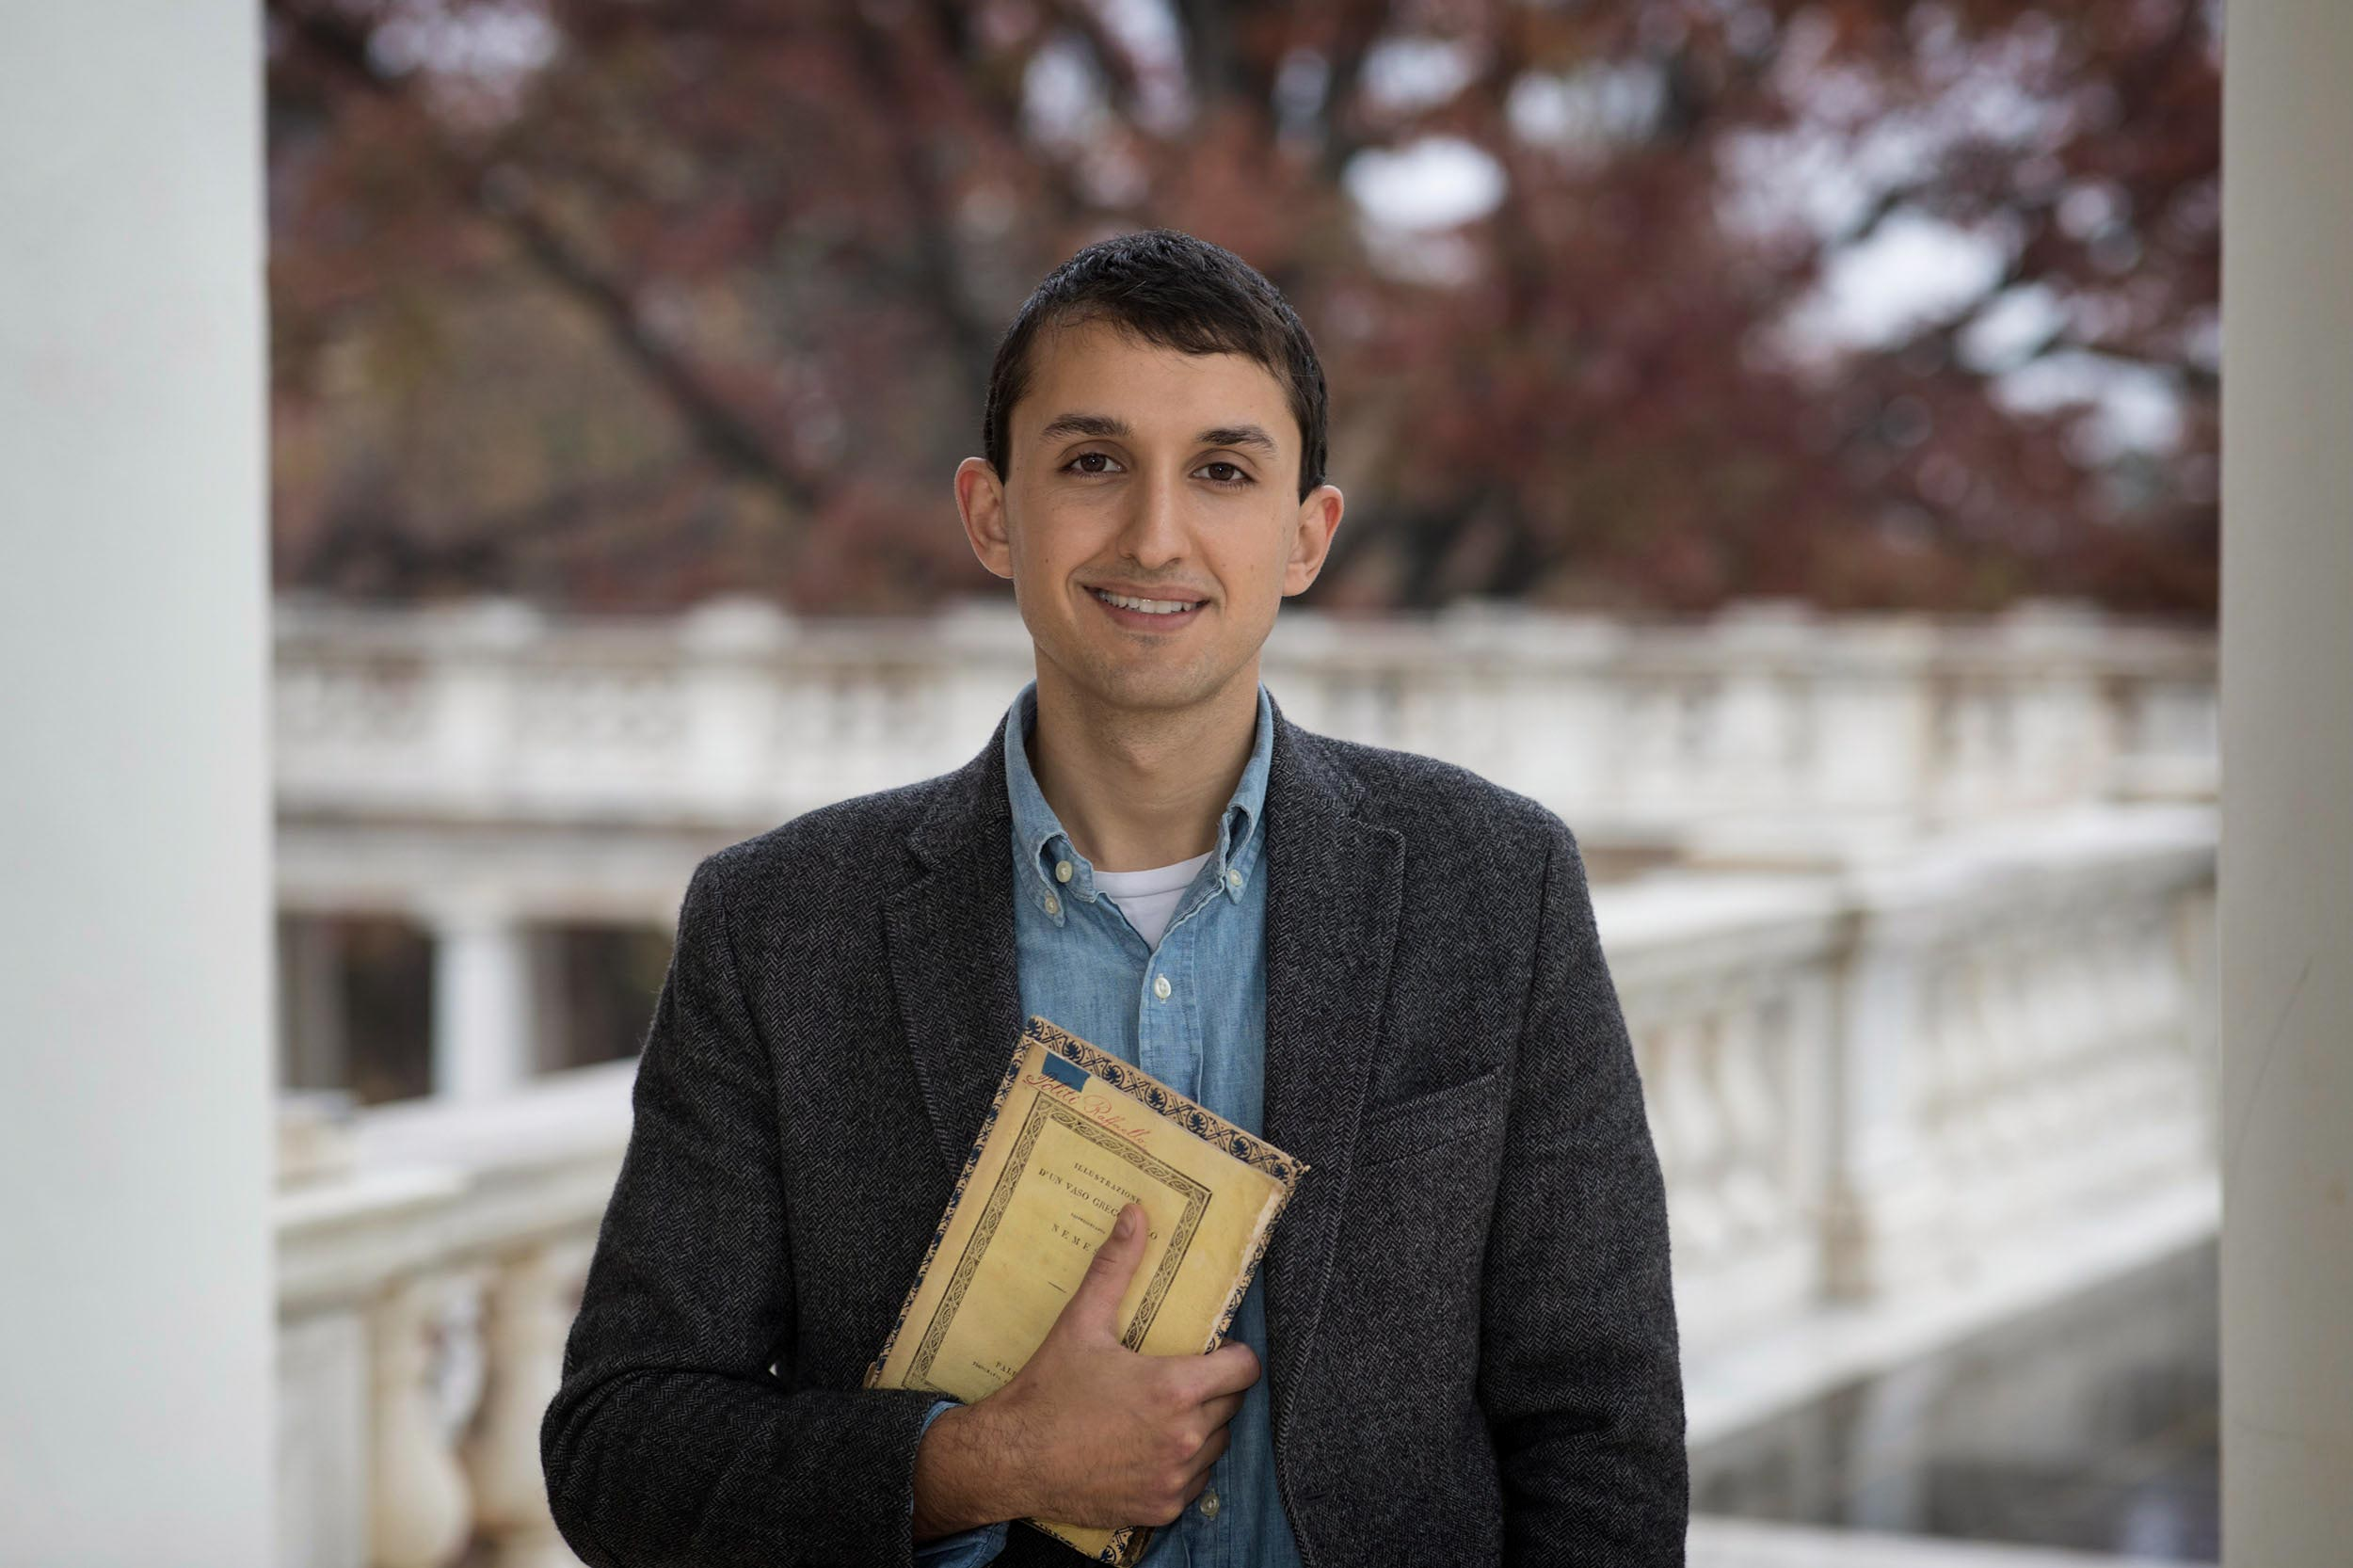 Samuel V. Lemley, a Ph.D. student in English, built an award-winning book collection of items from Sicily, where his maternal ancestors came from.